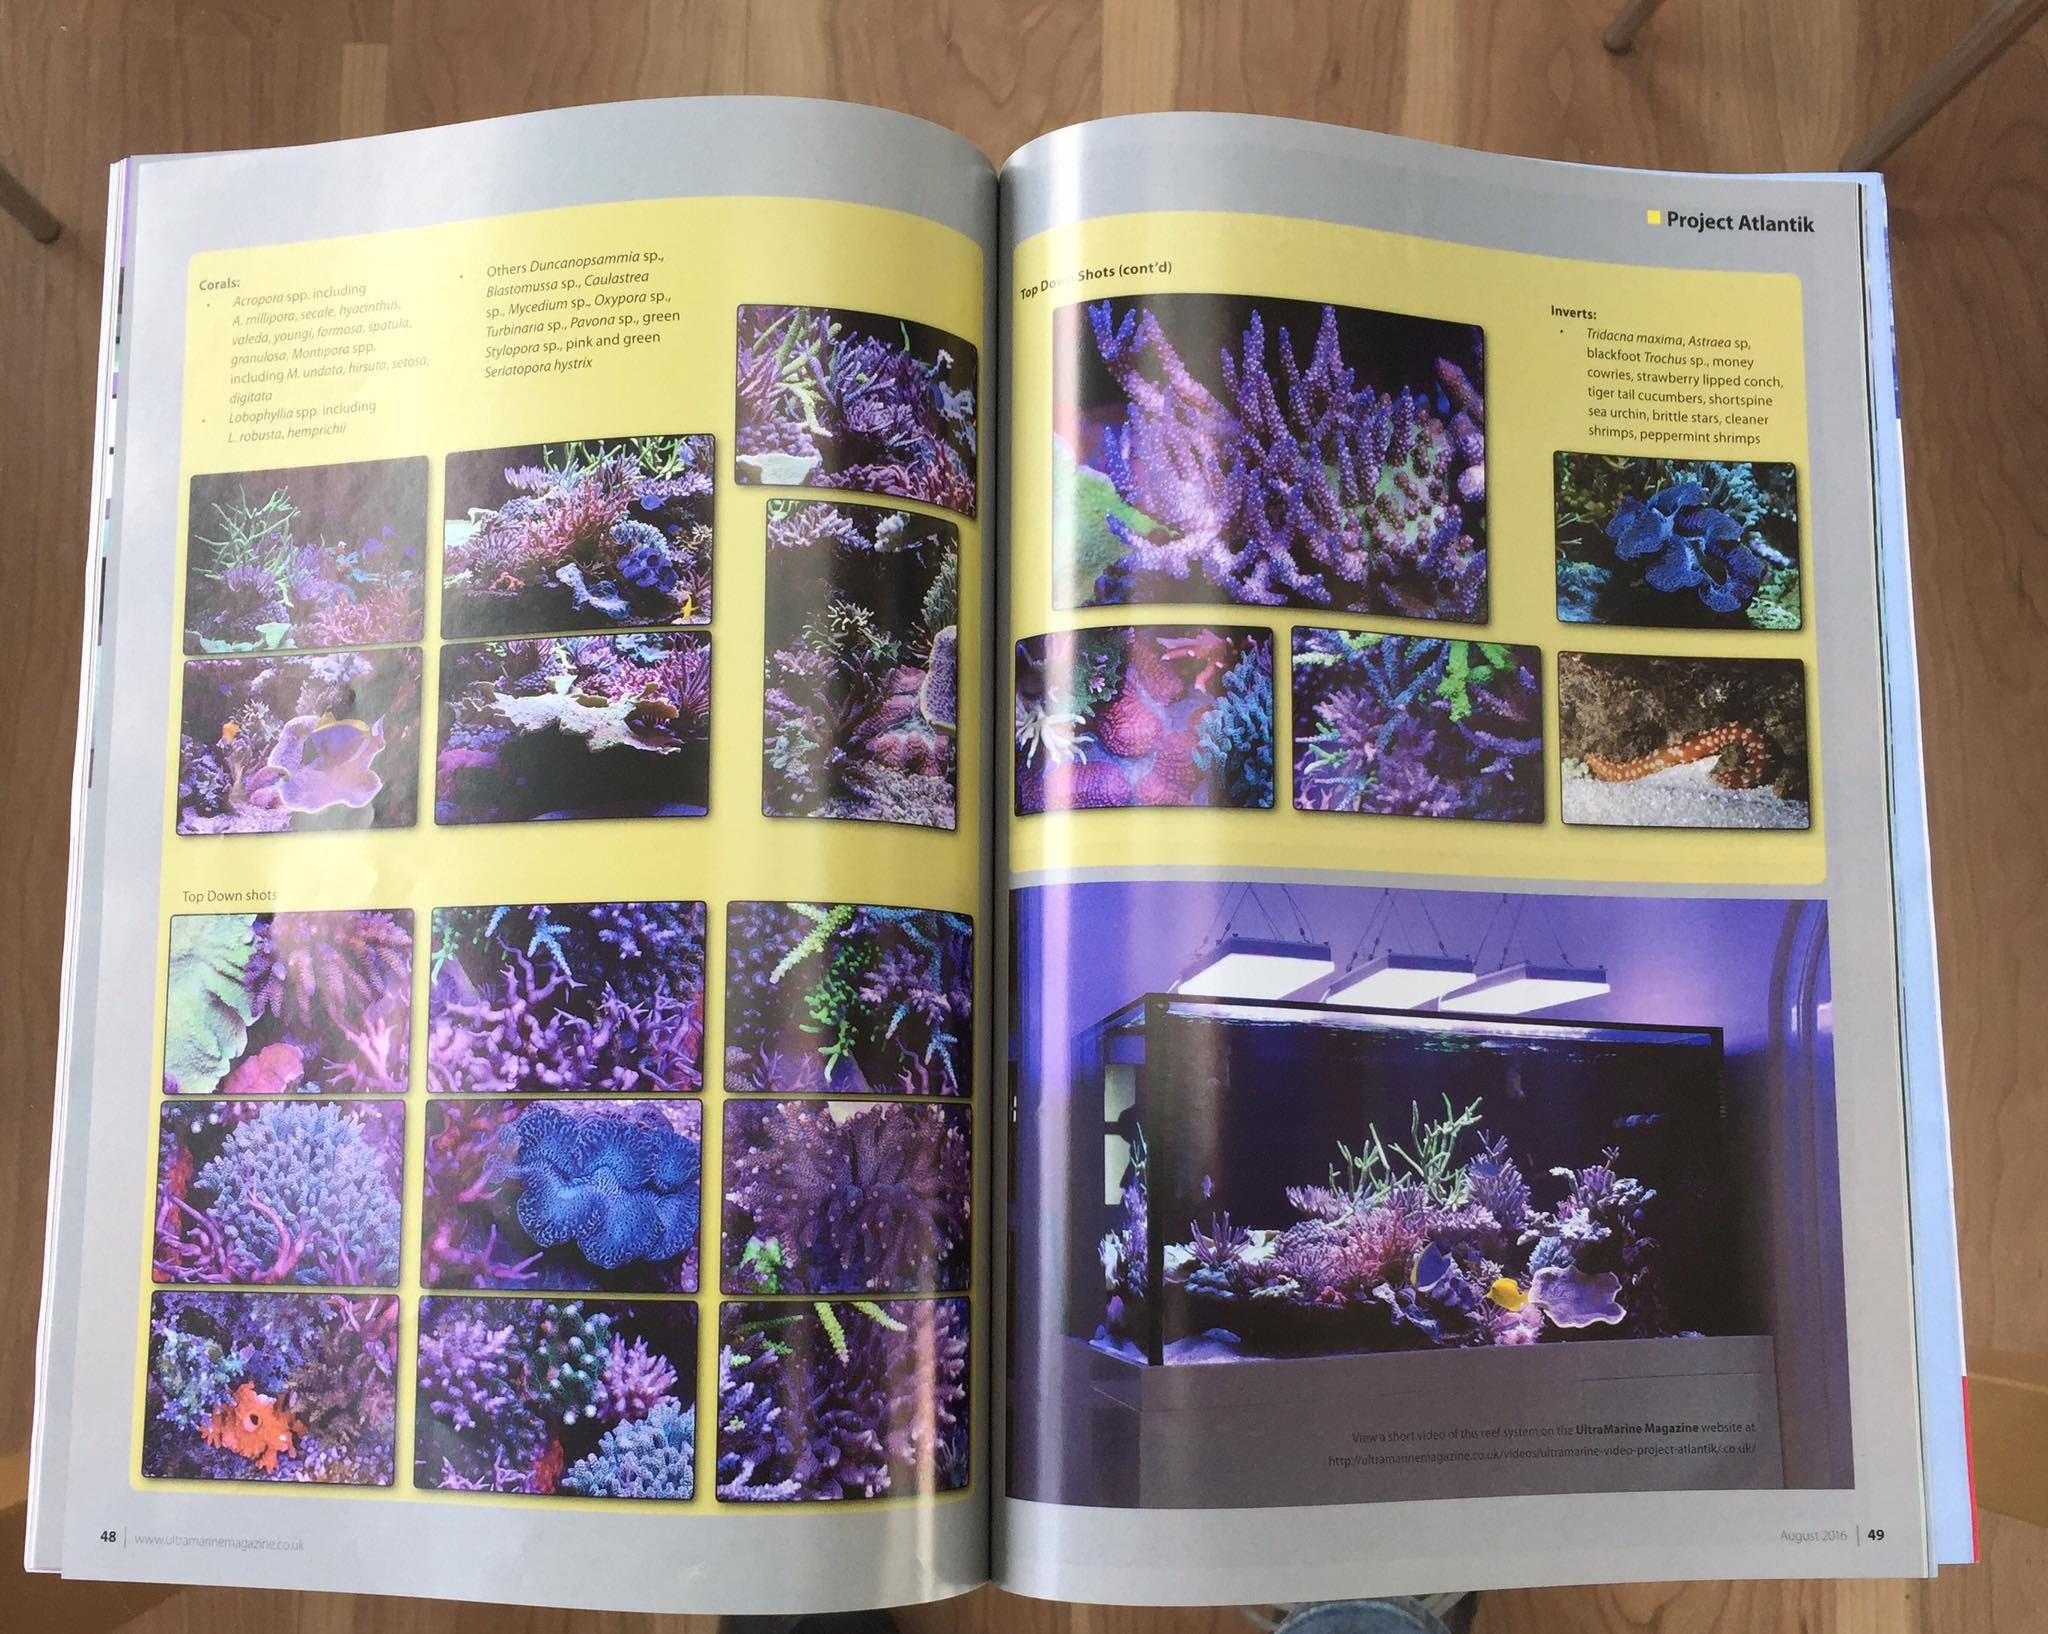 reef-tank-video-featured-uks-ultramarine-magazine